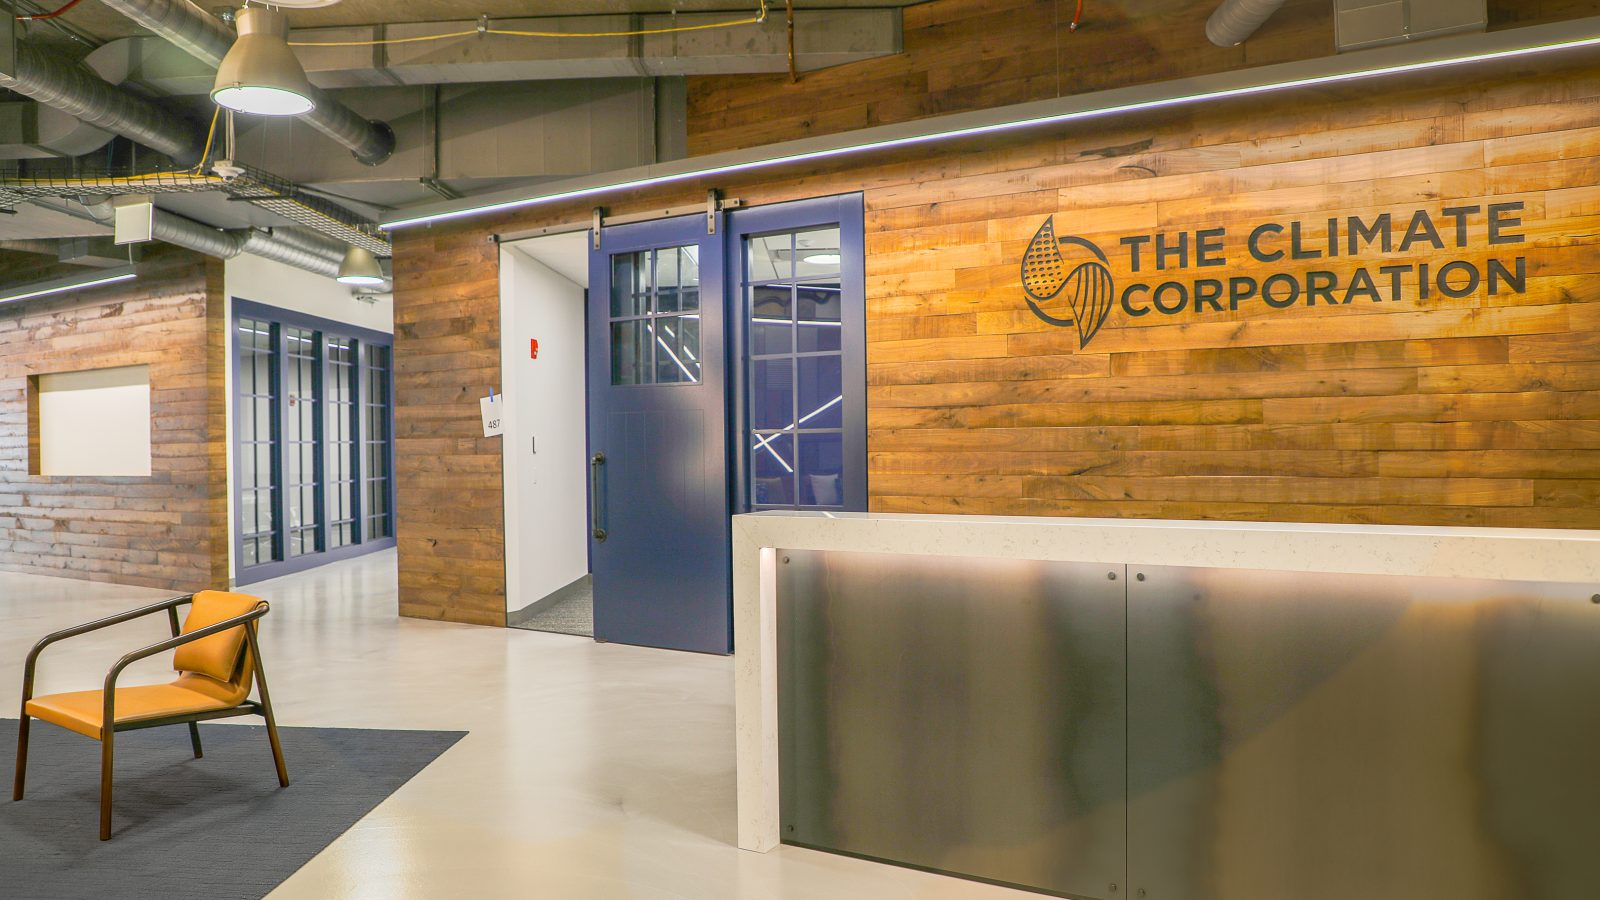 The climate corporation chicago il by skender - Kraft foods chicago office ...